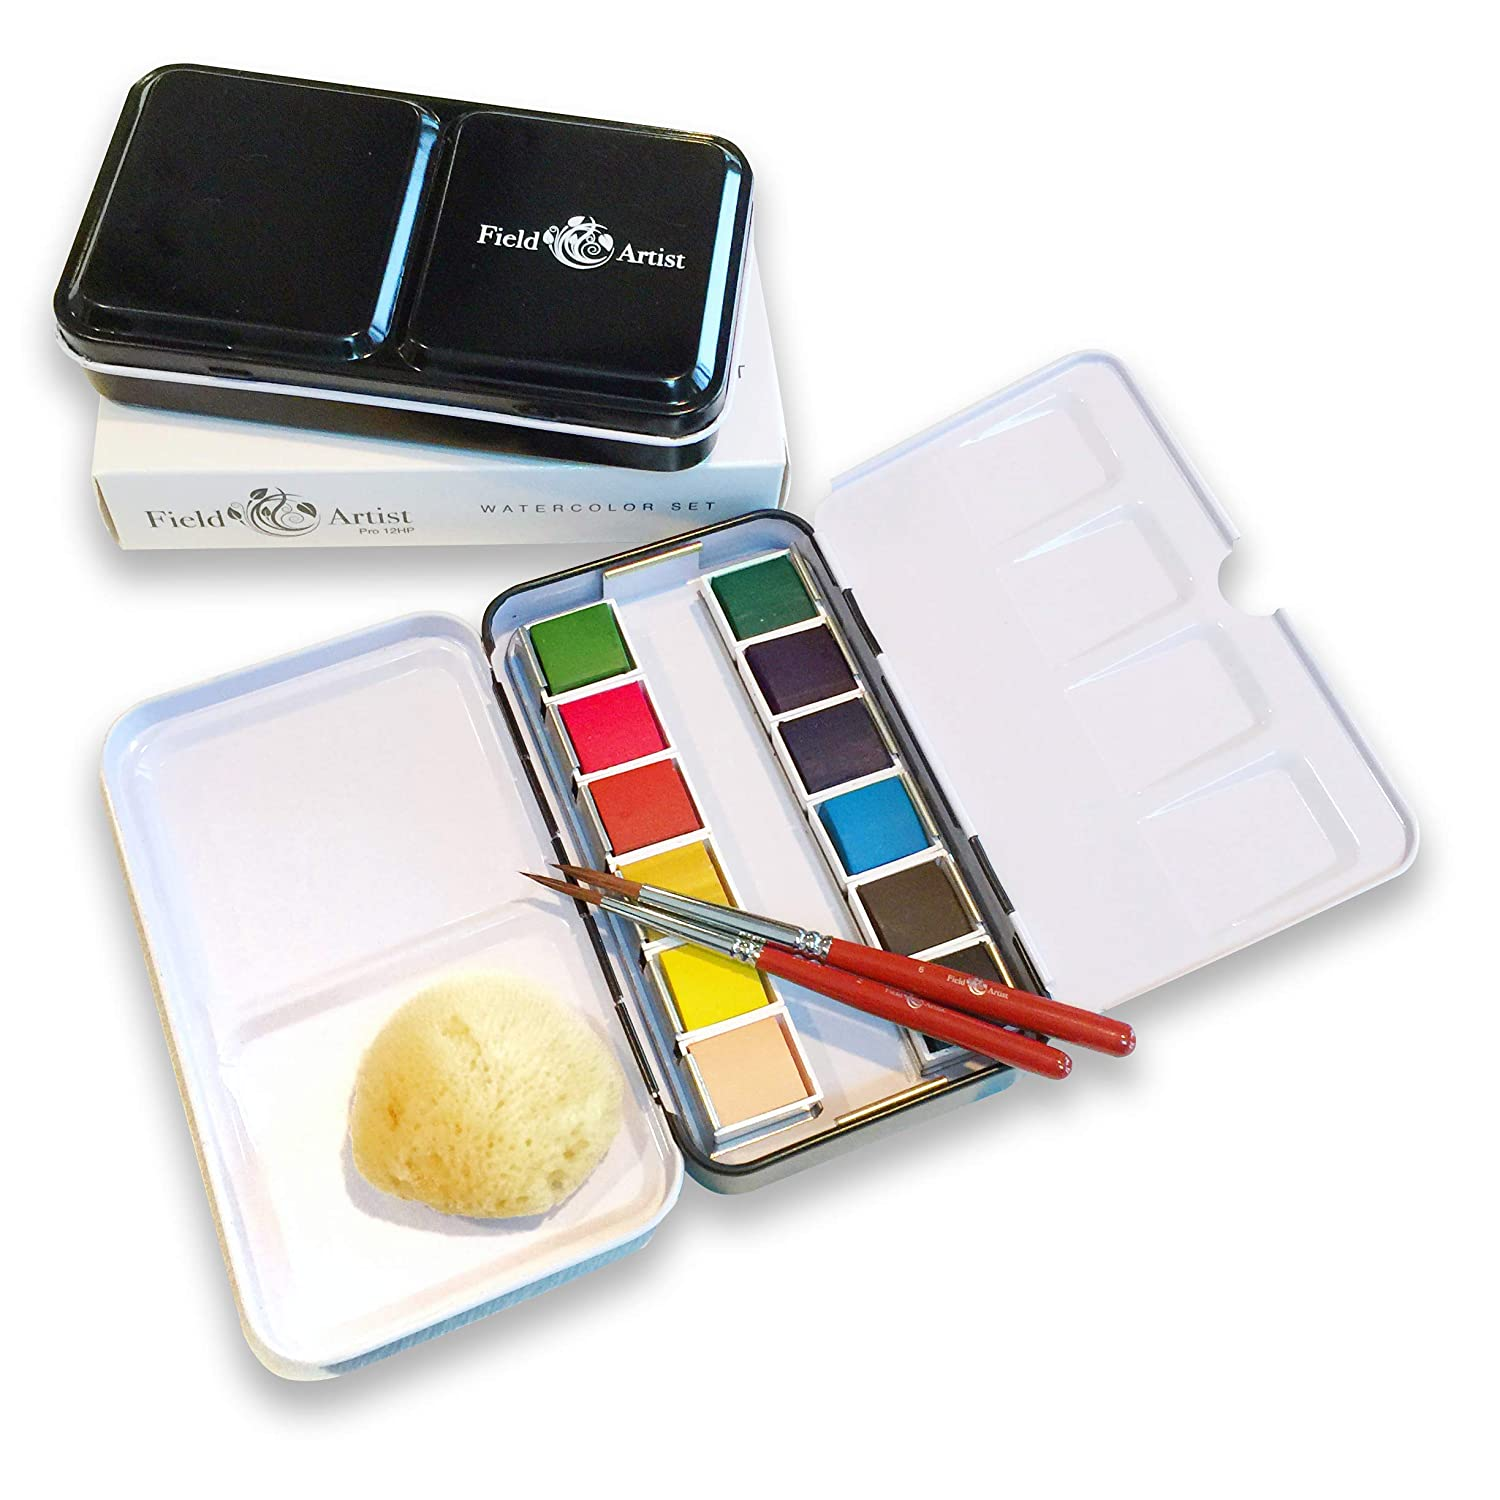 Field Artist Pro 12HP - Complete TRAVEL WATERCOLOR SET includes 12 Brilliant Half Pan Colors, 2 Custom Brushes, a Genuine Sea Sponge, a Classic Metal Field Box, all fits in your Pocket! UniverseArt